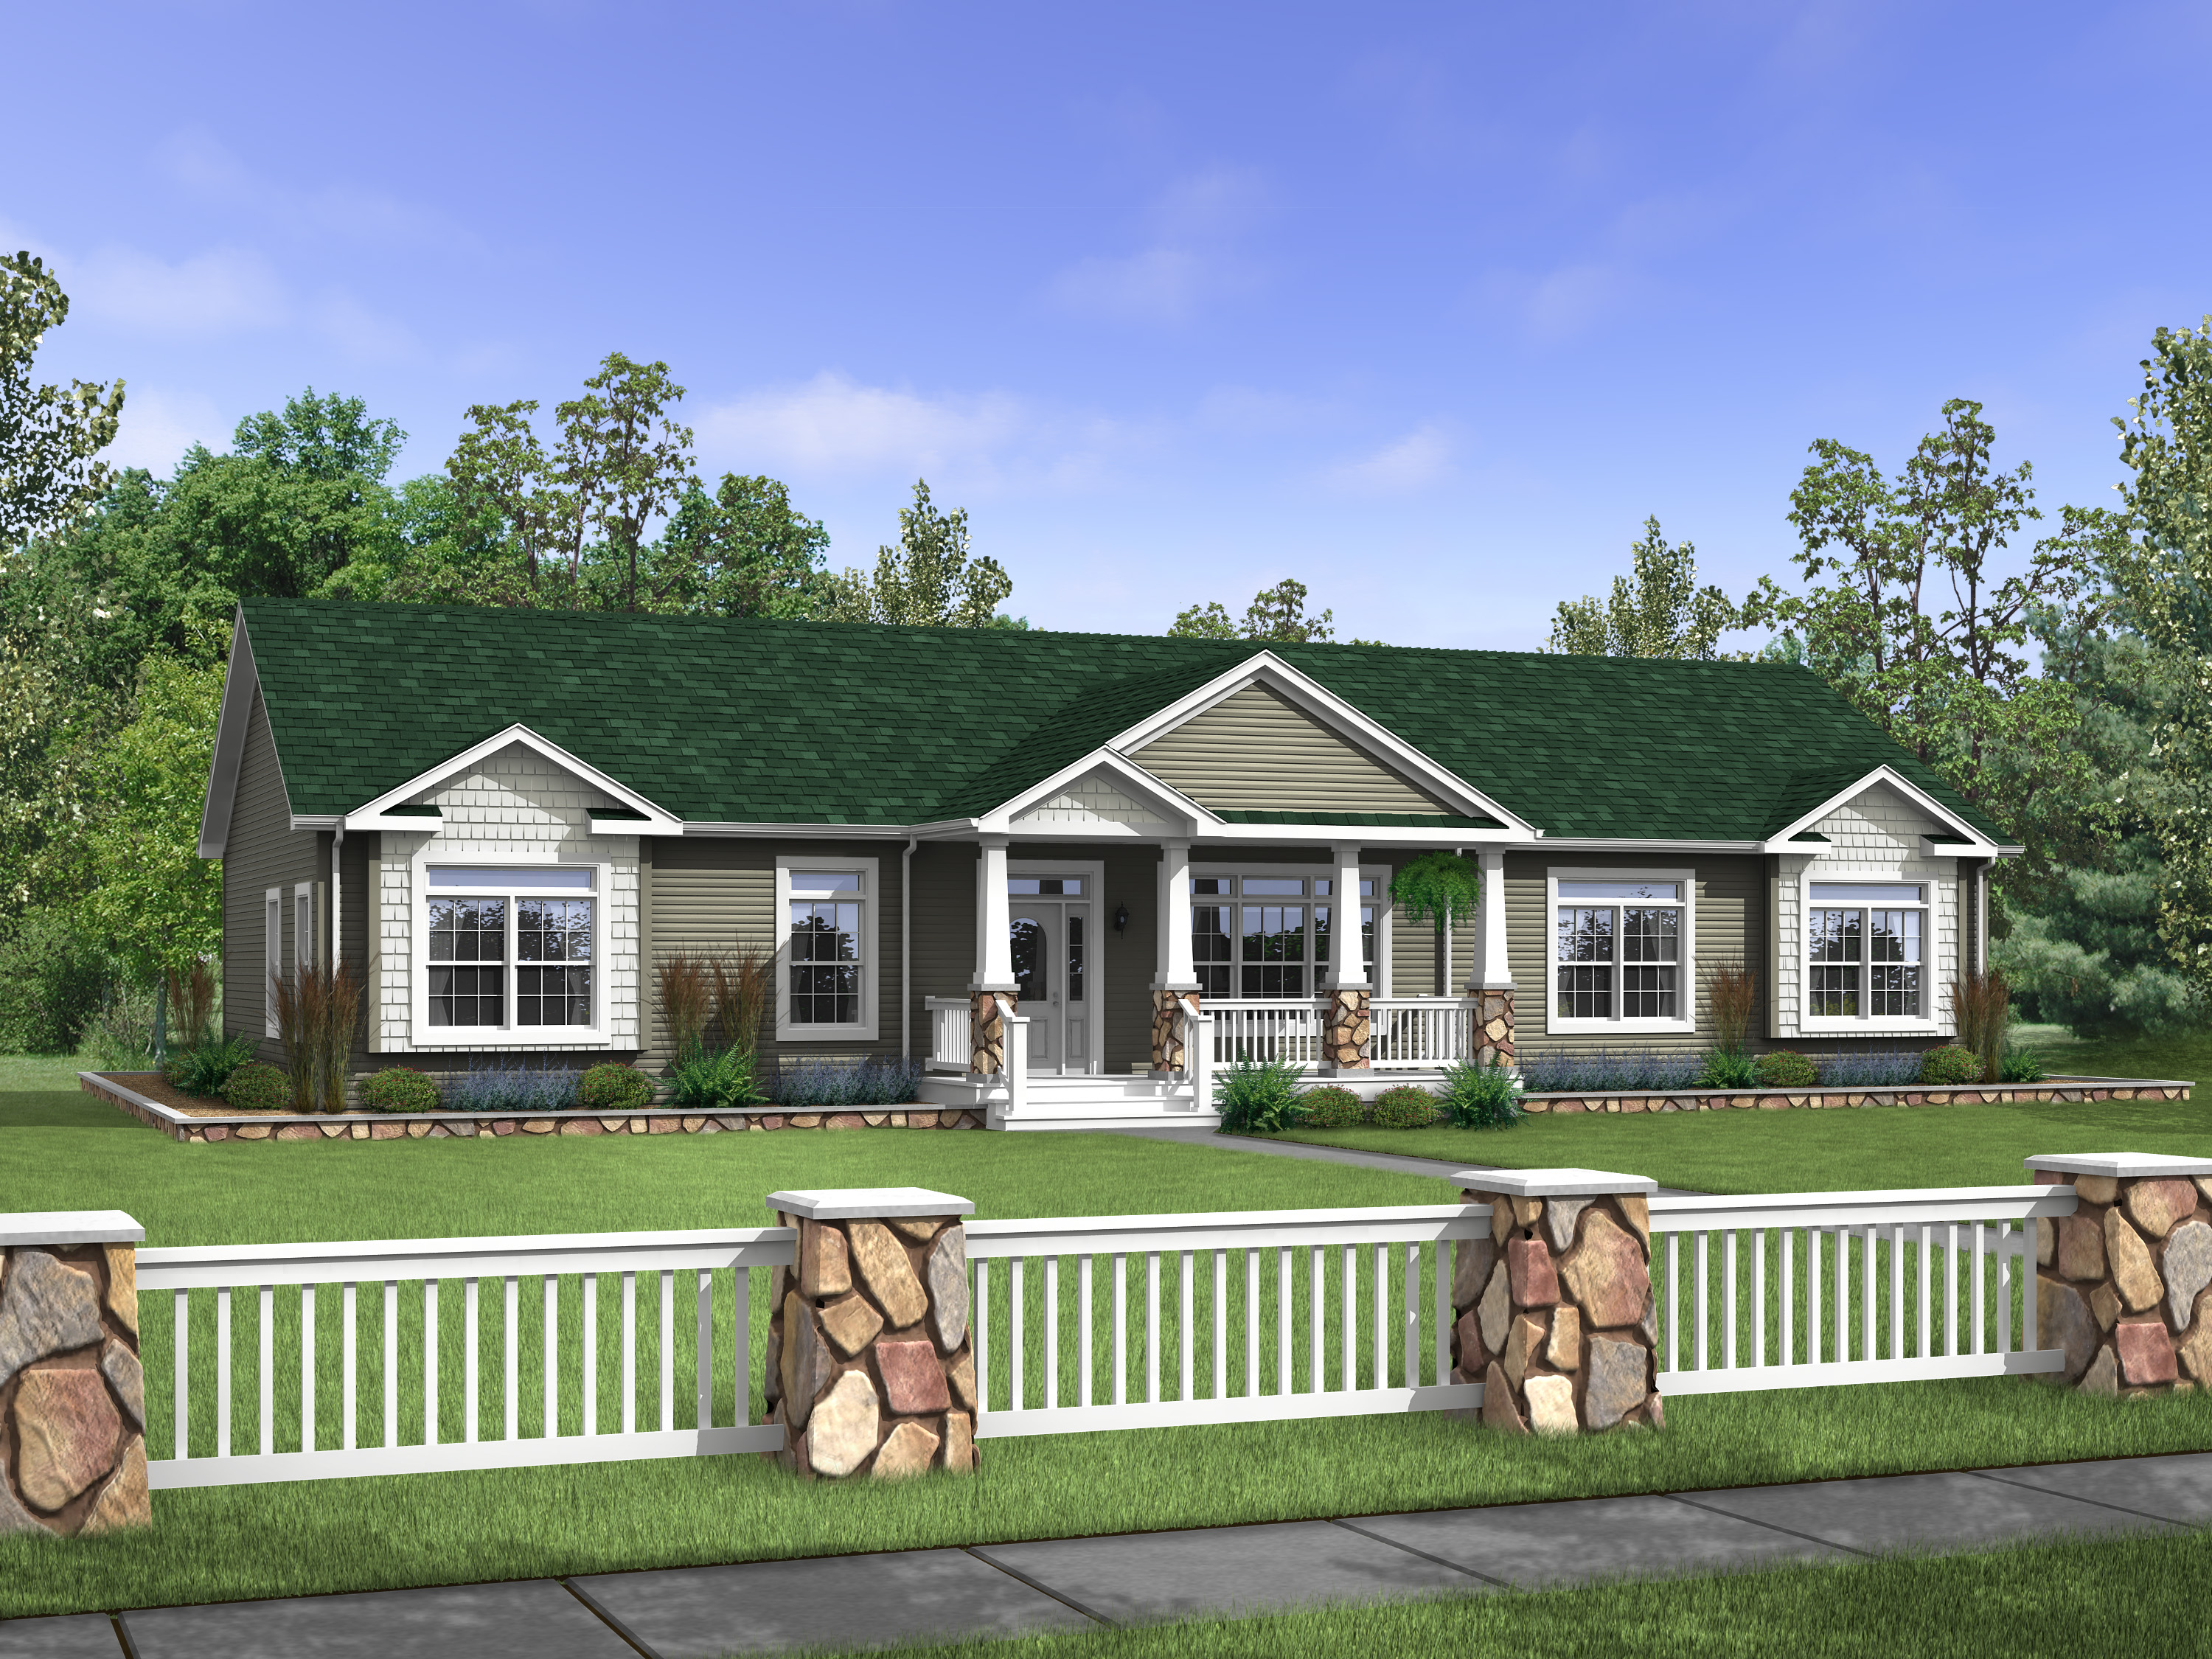 Affordable Modular Ranch Value Home Floor Plans on